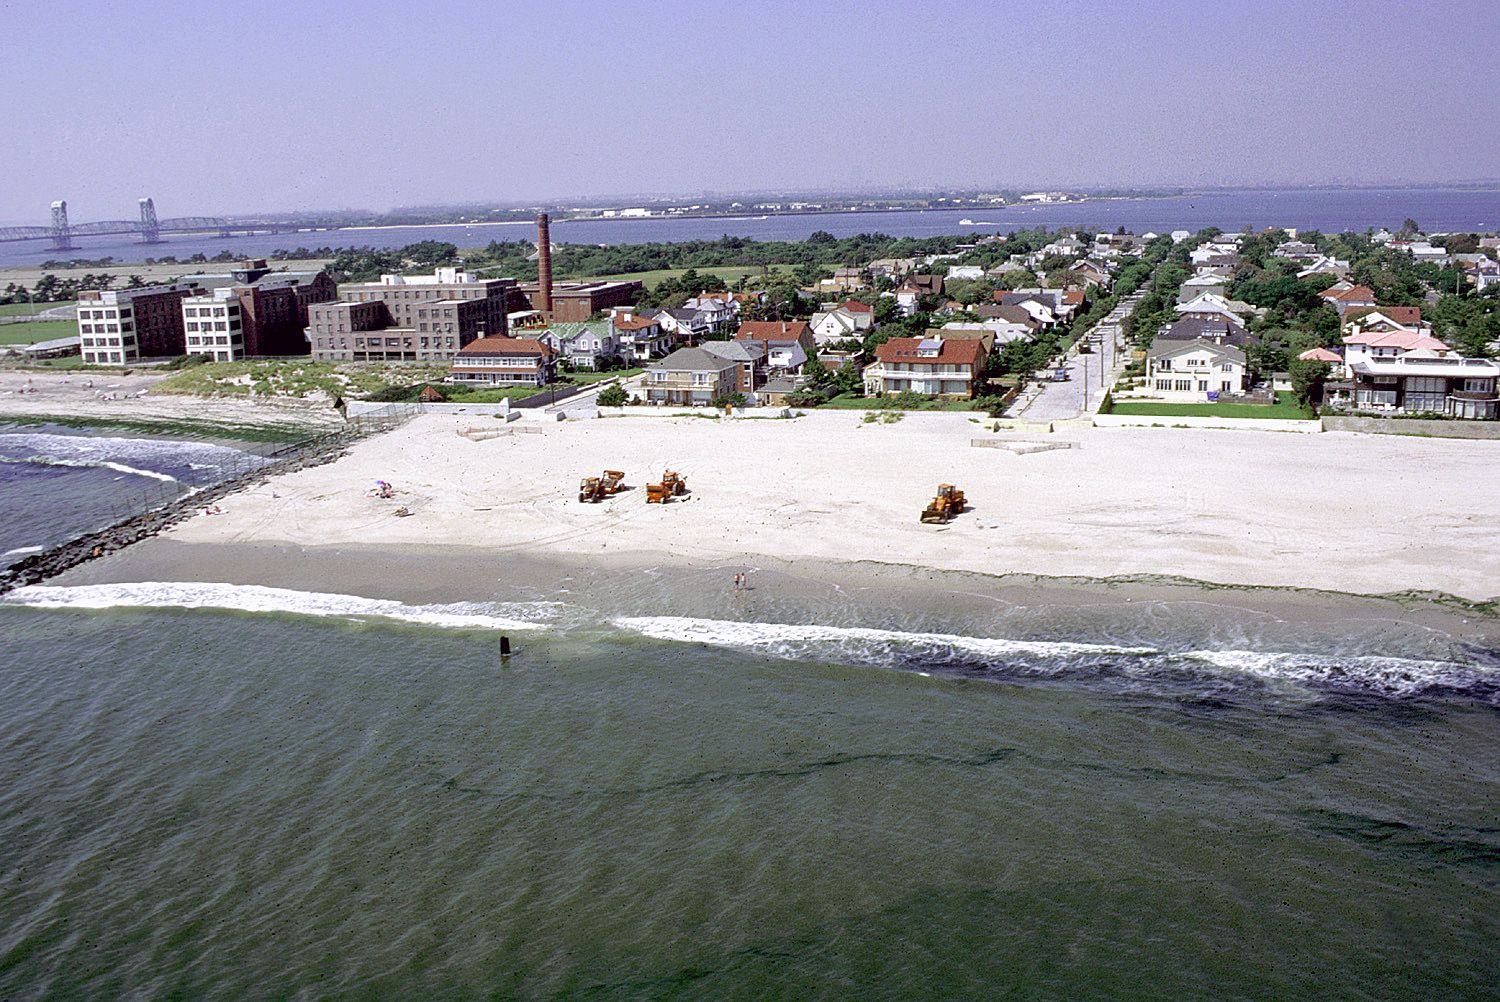 Aerial View Of Rockaway Beach A Neighborhood On The Peninsula In New York City Borough Queens Which Is Largest Urban